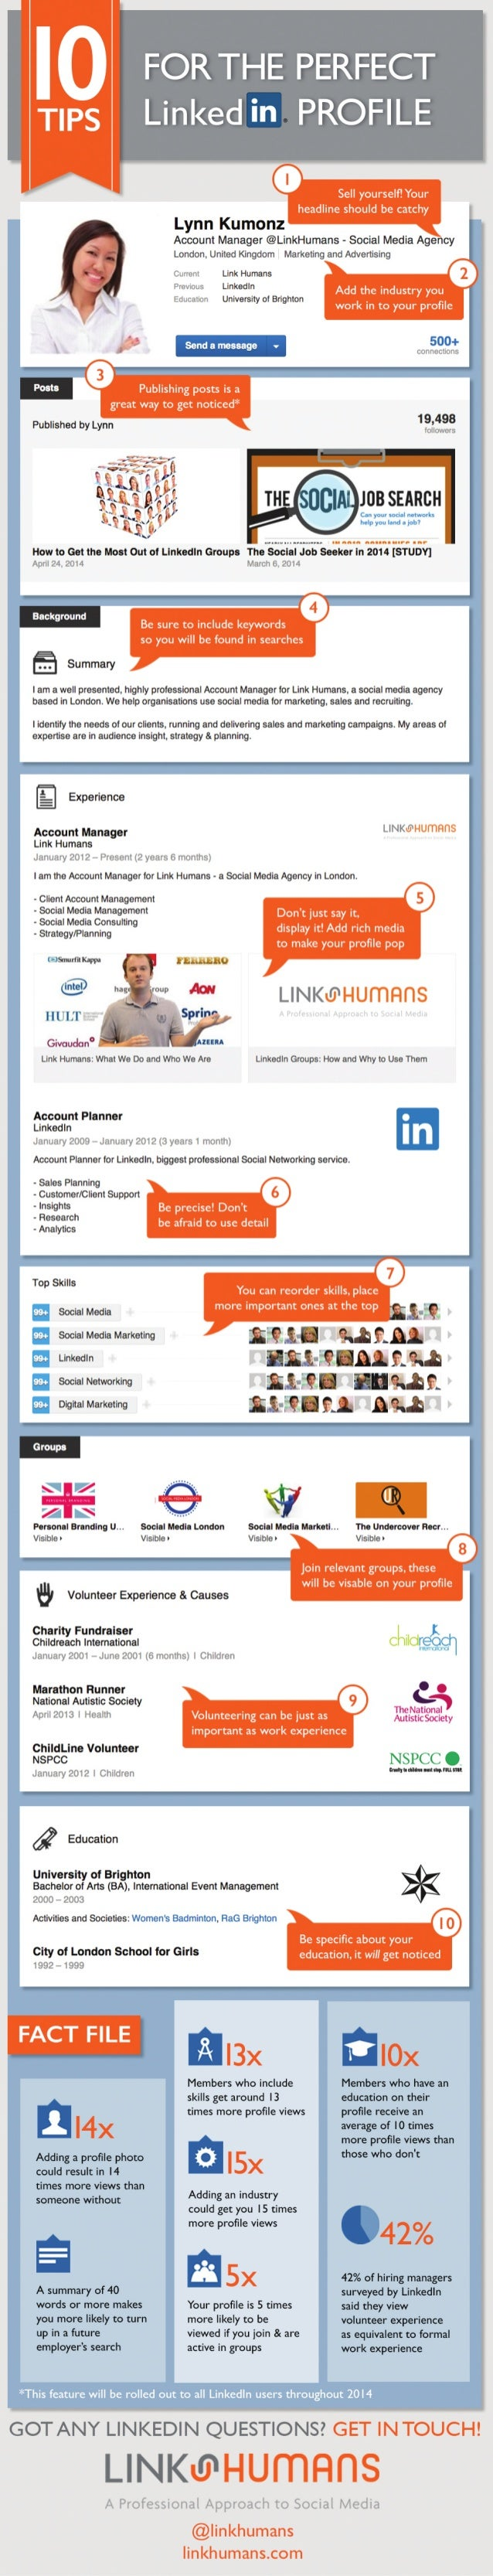 10 Tips for the Perfect LinkedIn Profile